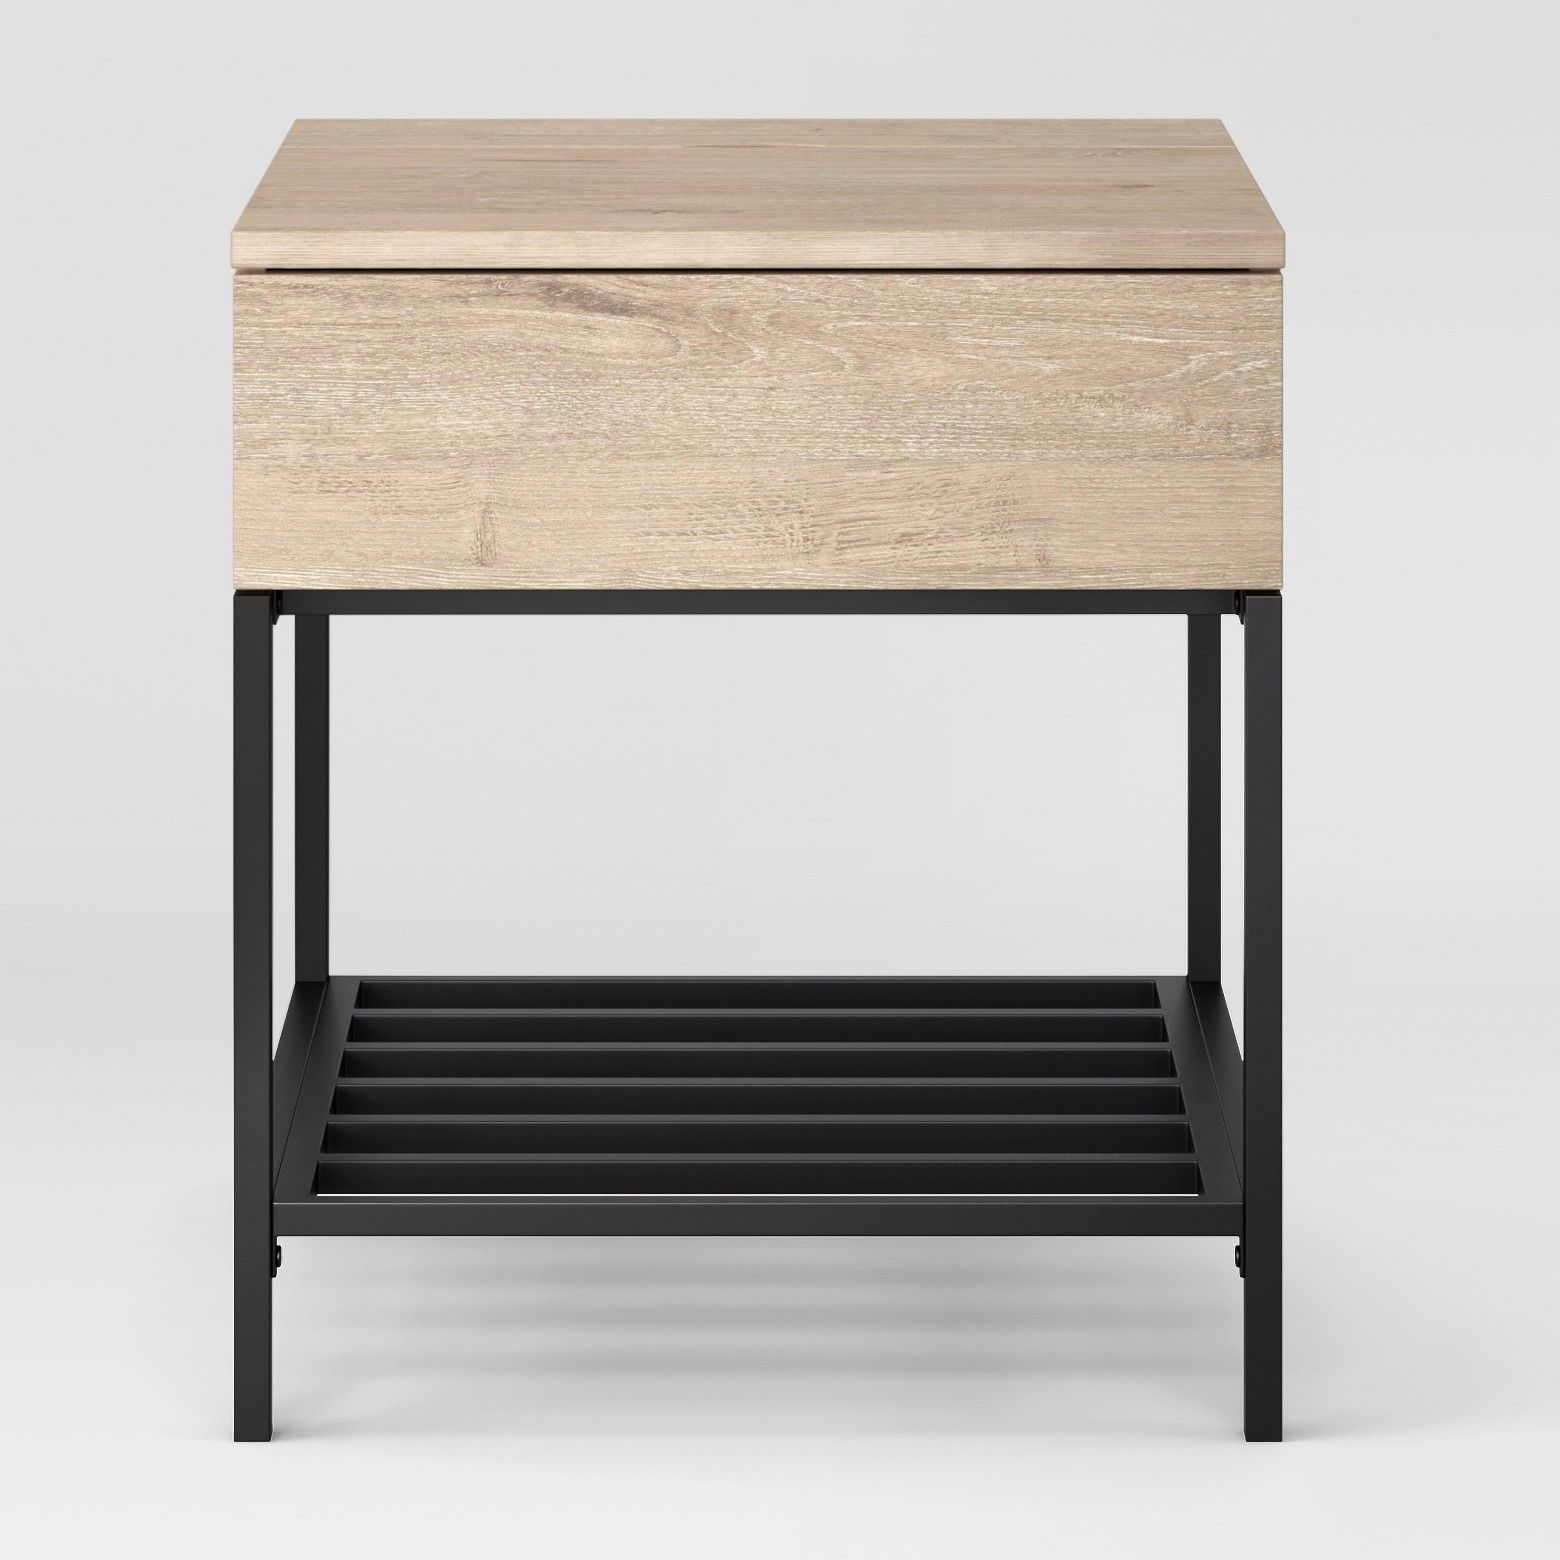 the loring end table from project 62 uses an industrial design rh pinterest com